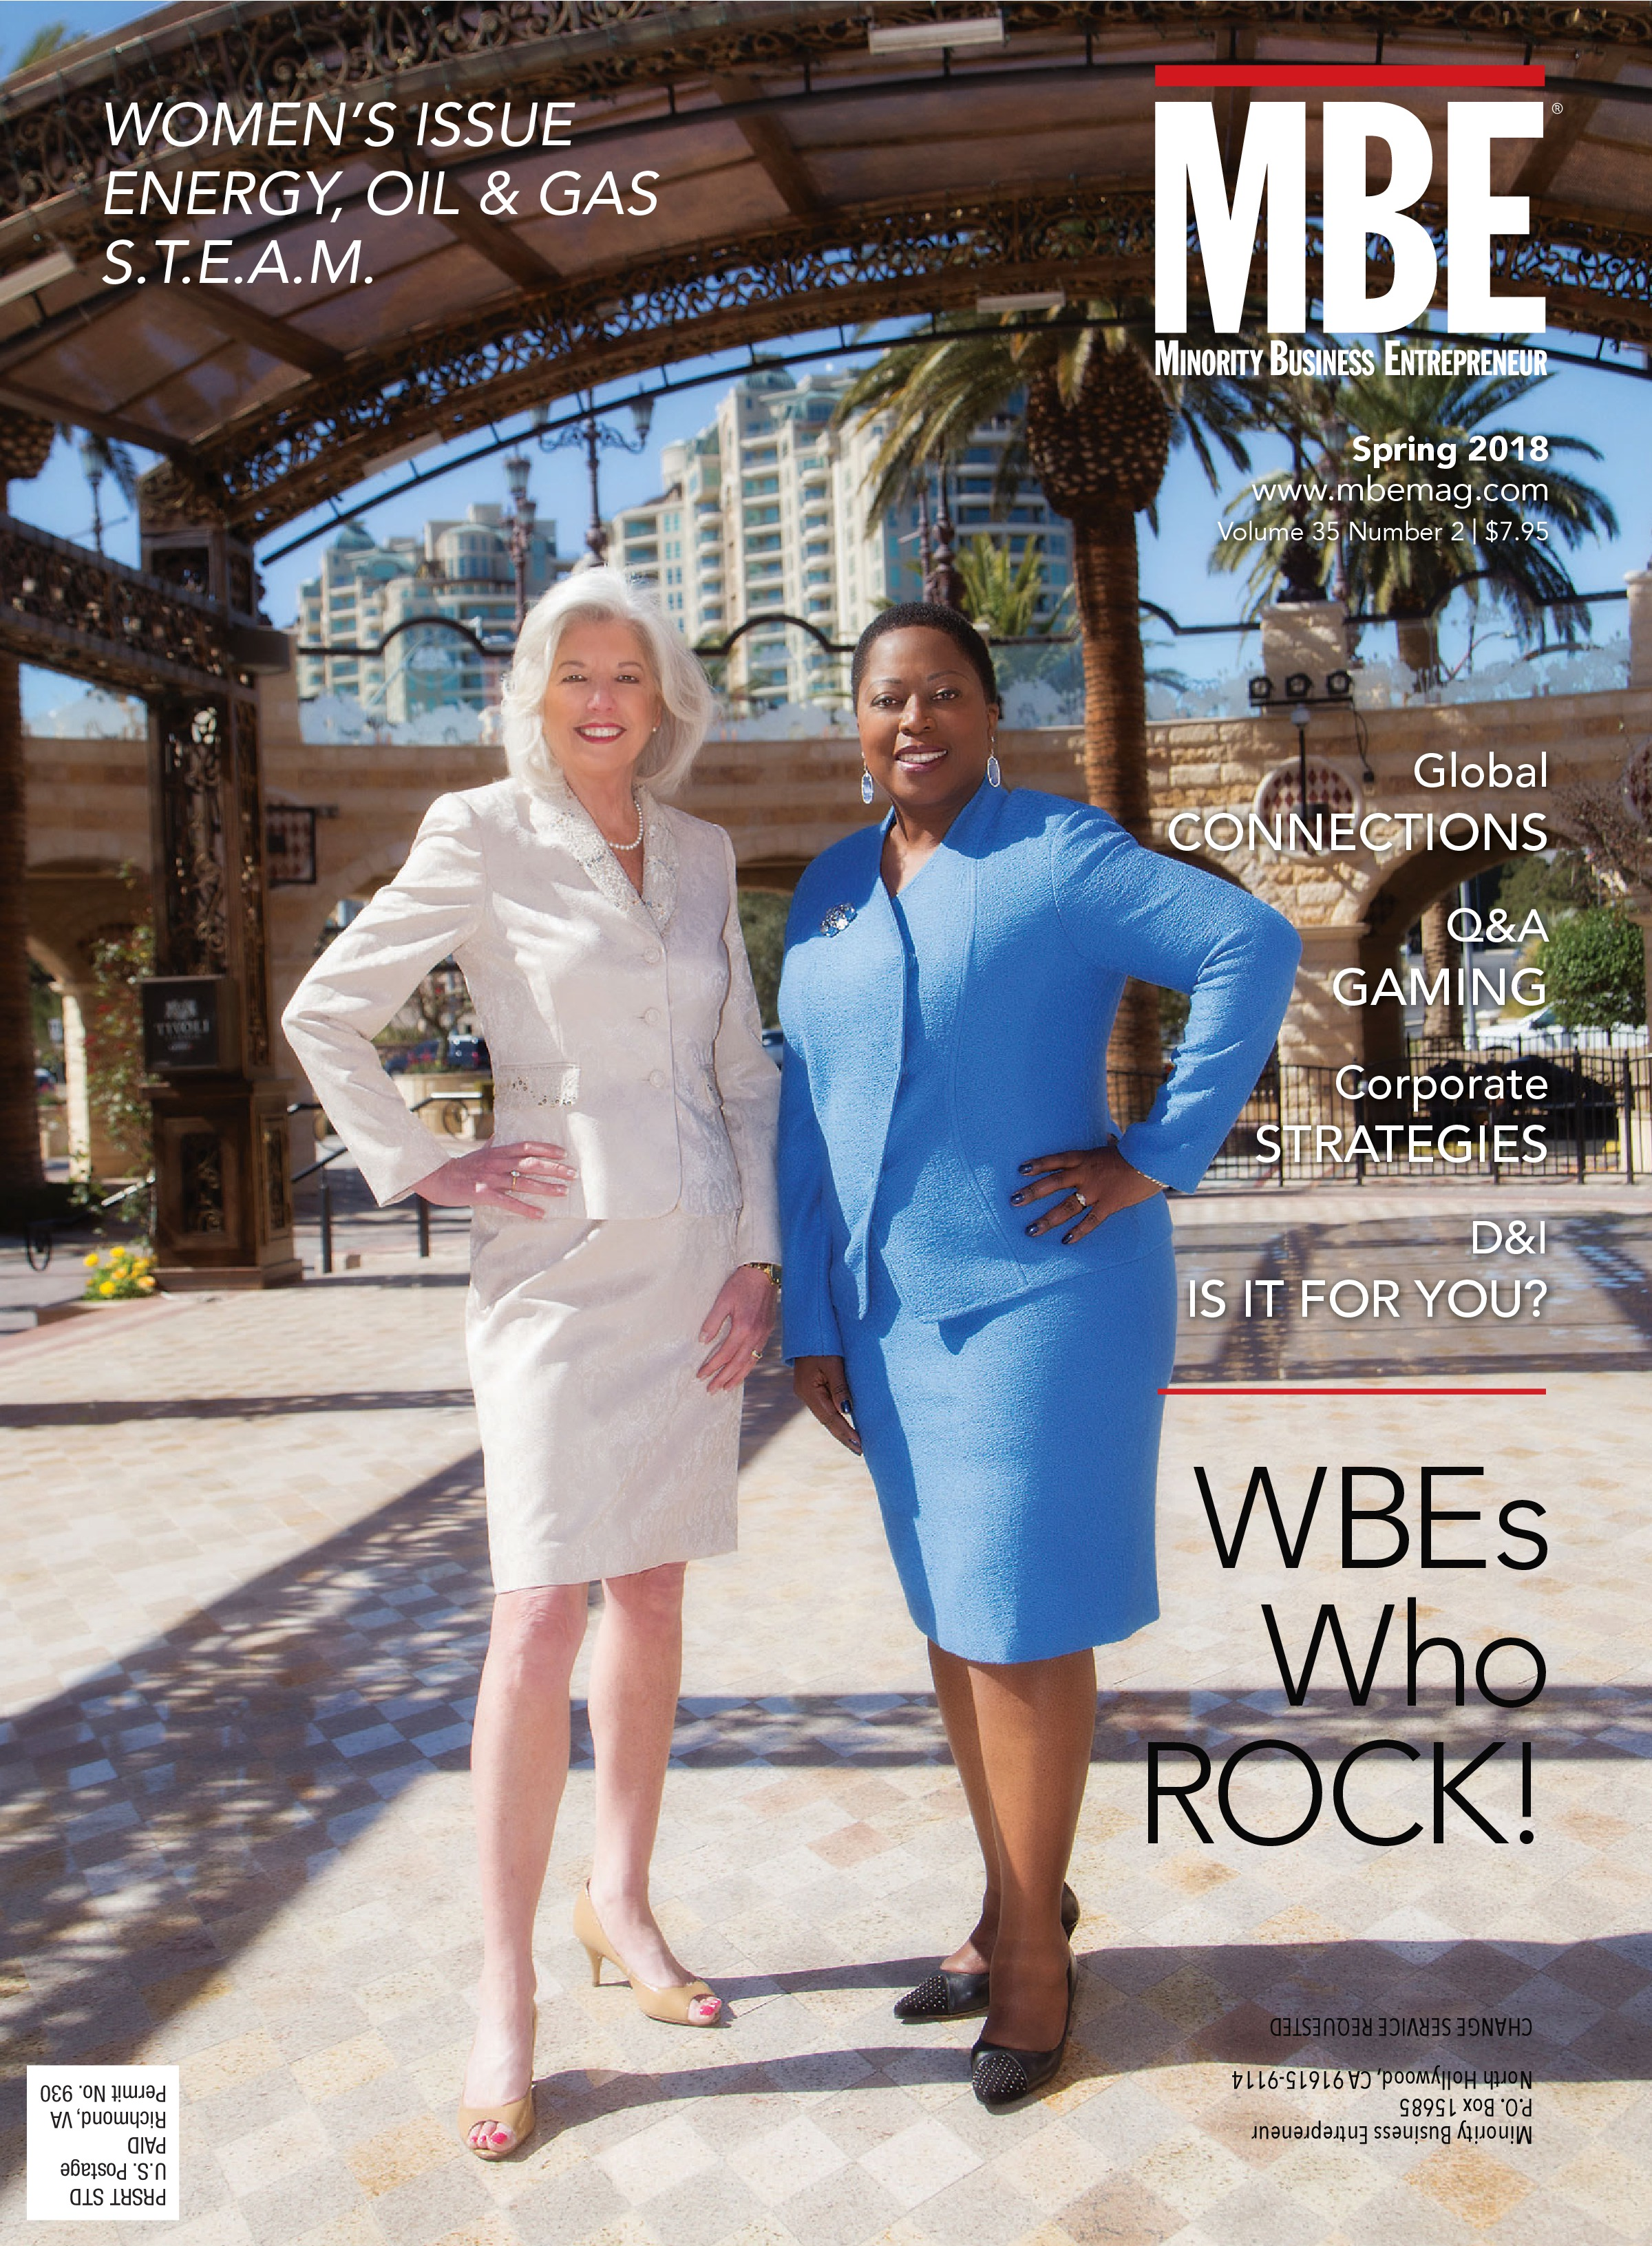 WBEs Who ROCK! MBE Magazine Spring 2018